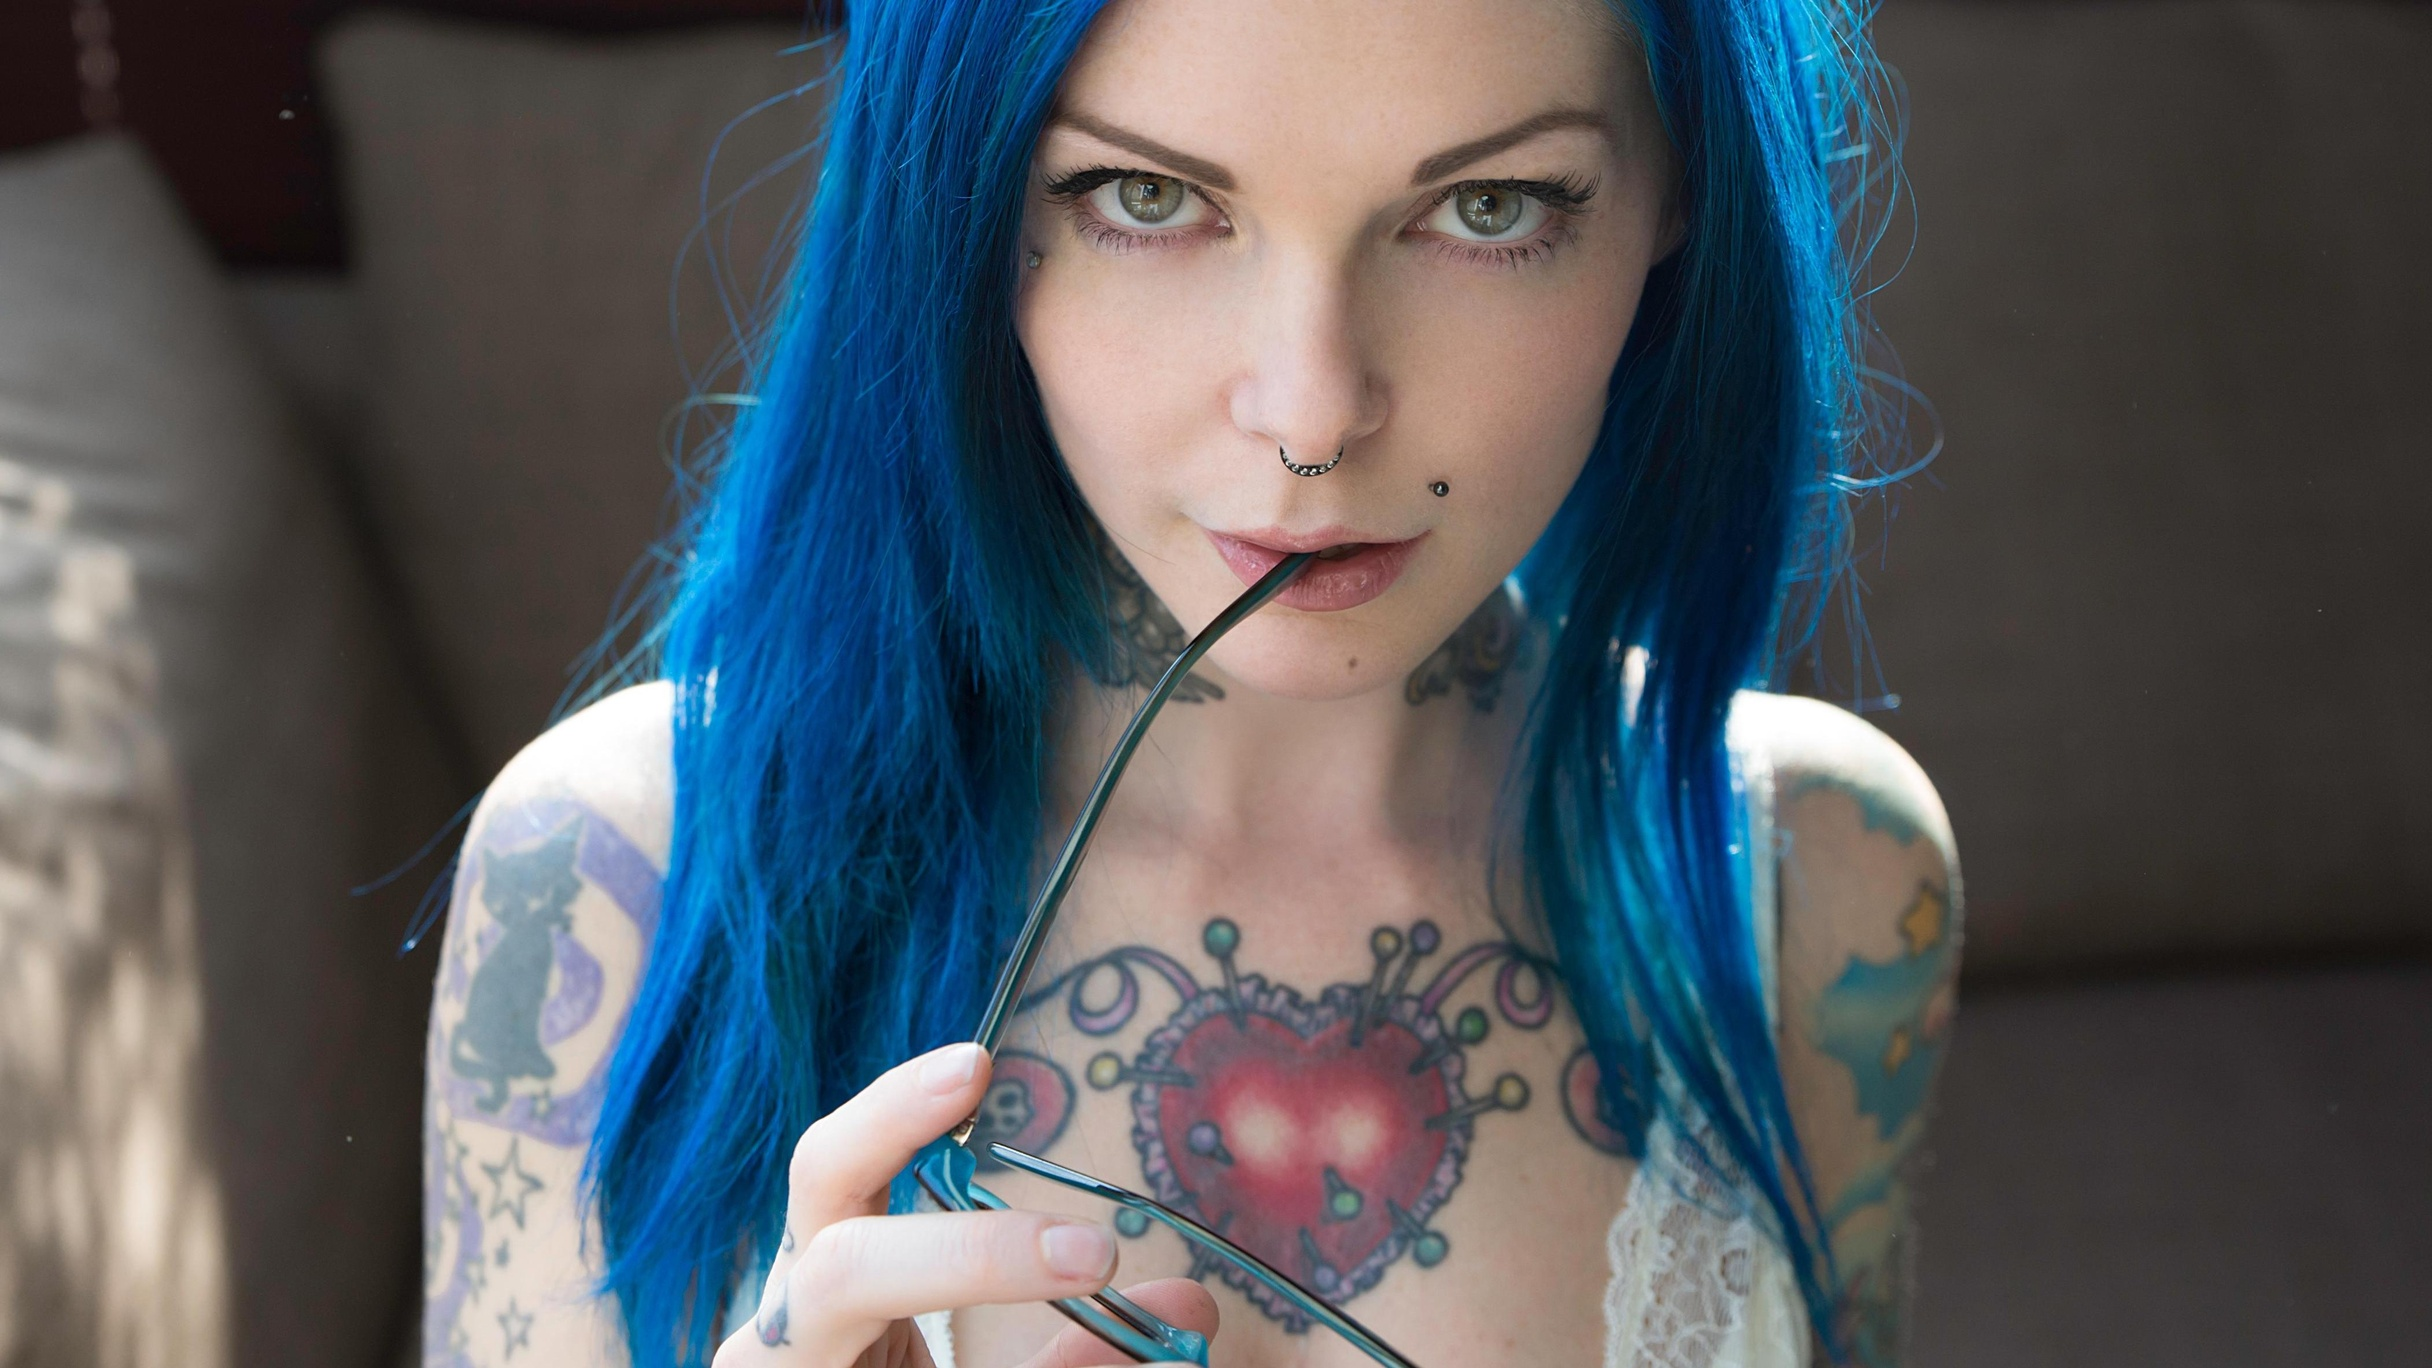 Riae Suicide  - The Theory O suicidegirls @riae italian,goddess,angelic,perfection,mega